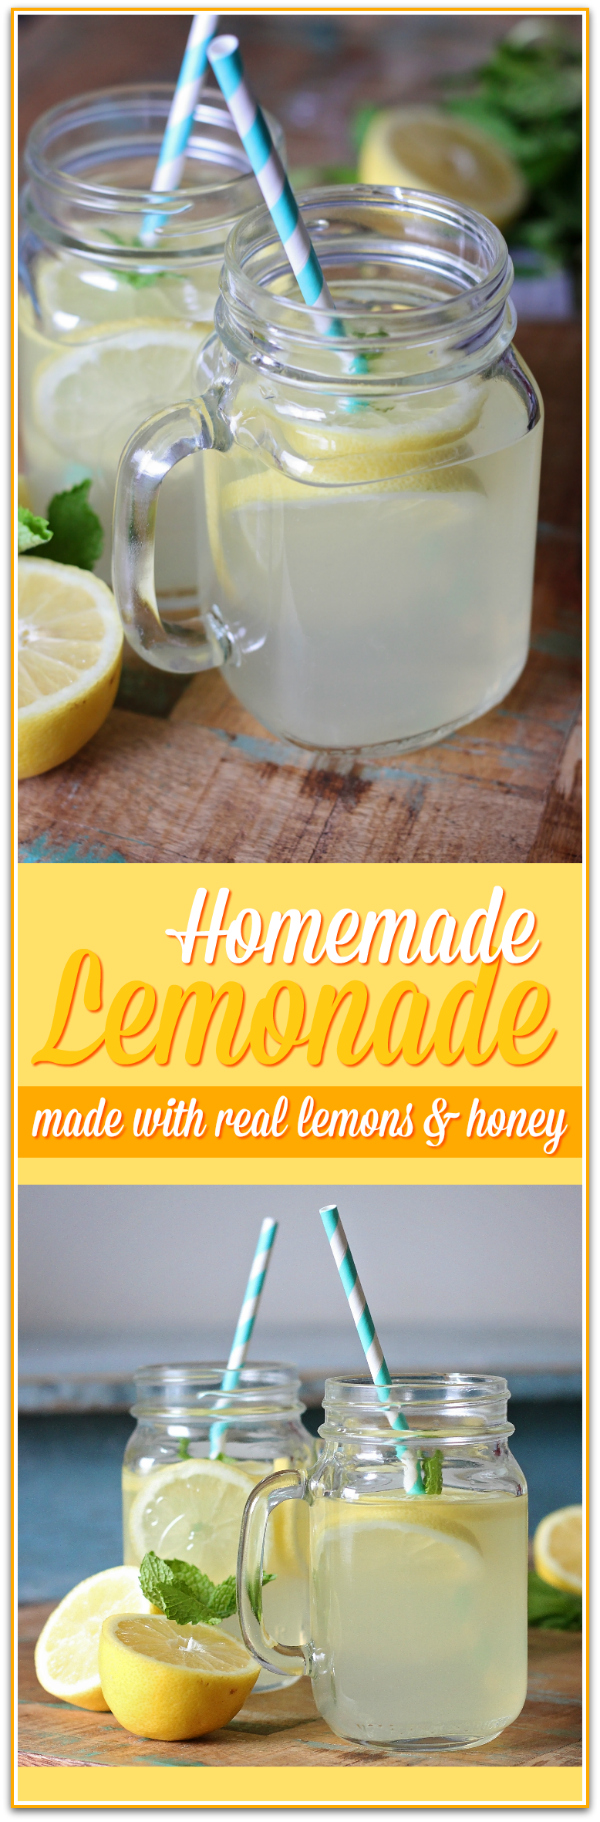 This is the best homemade lemonade recipe using real lemons and honey - so simple & refreshing!